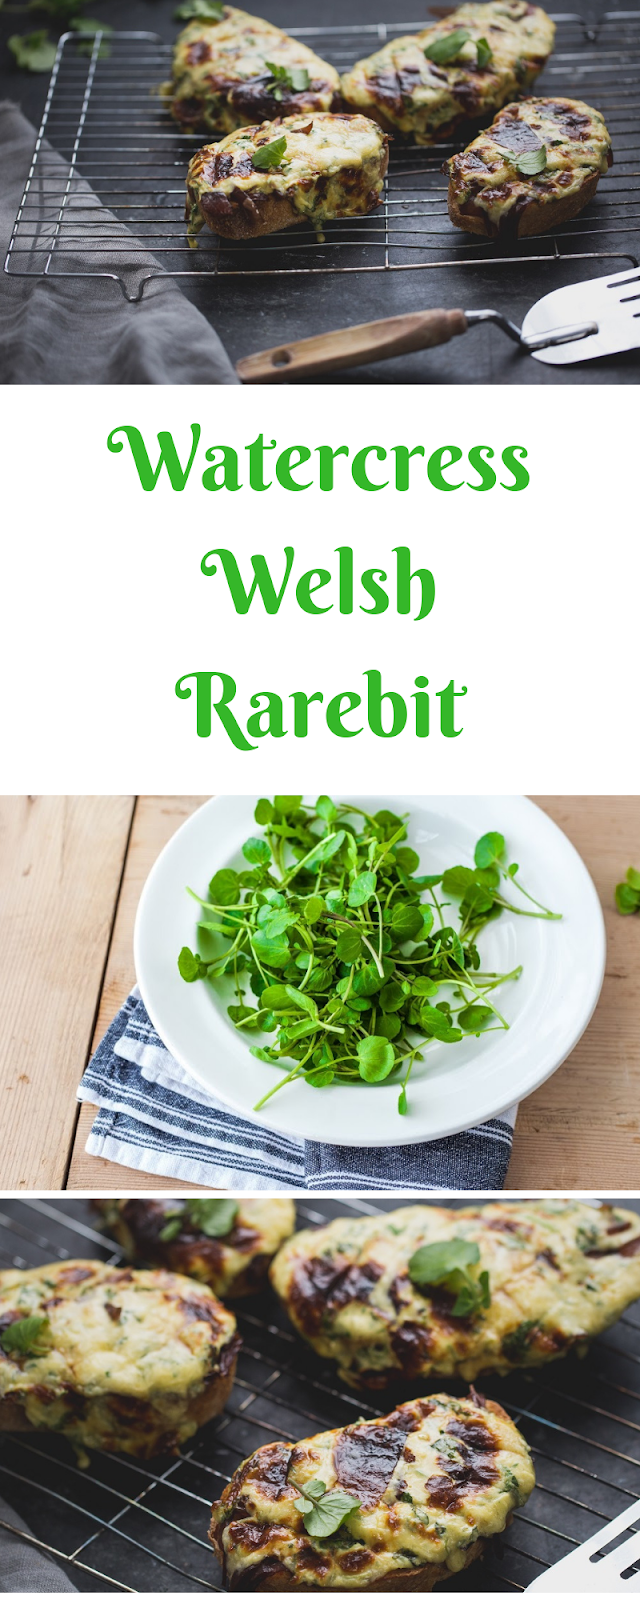 Watercress Welsh Rarebit